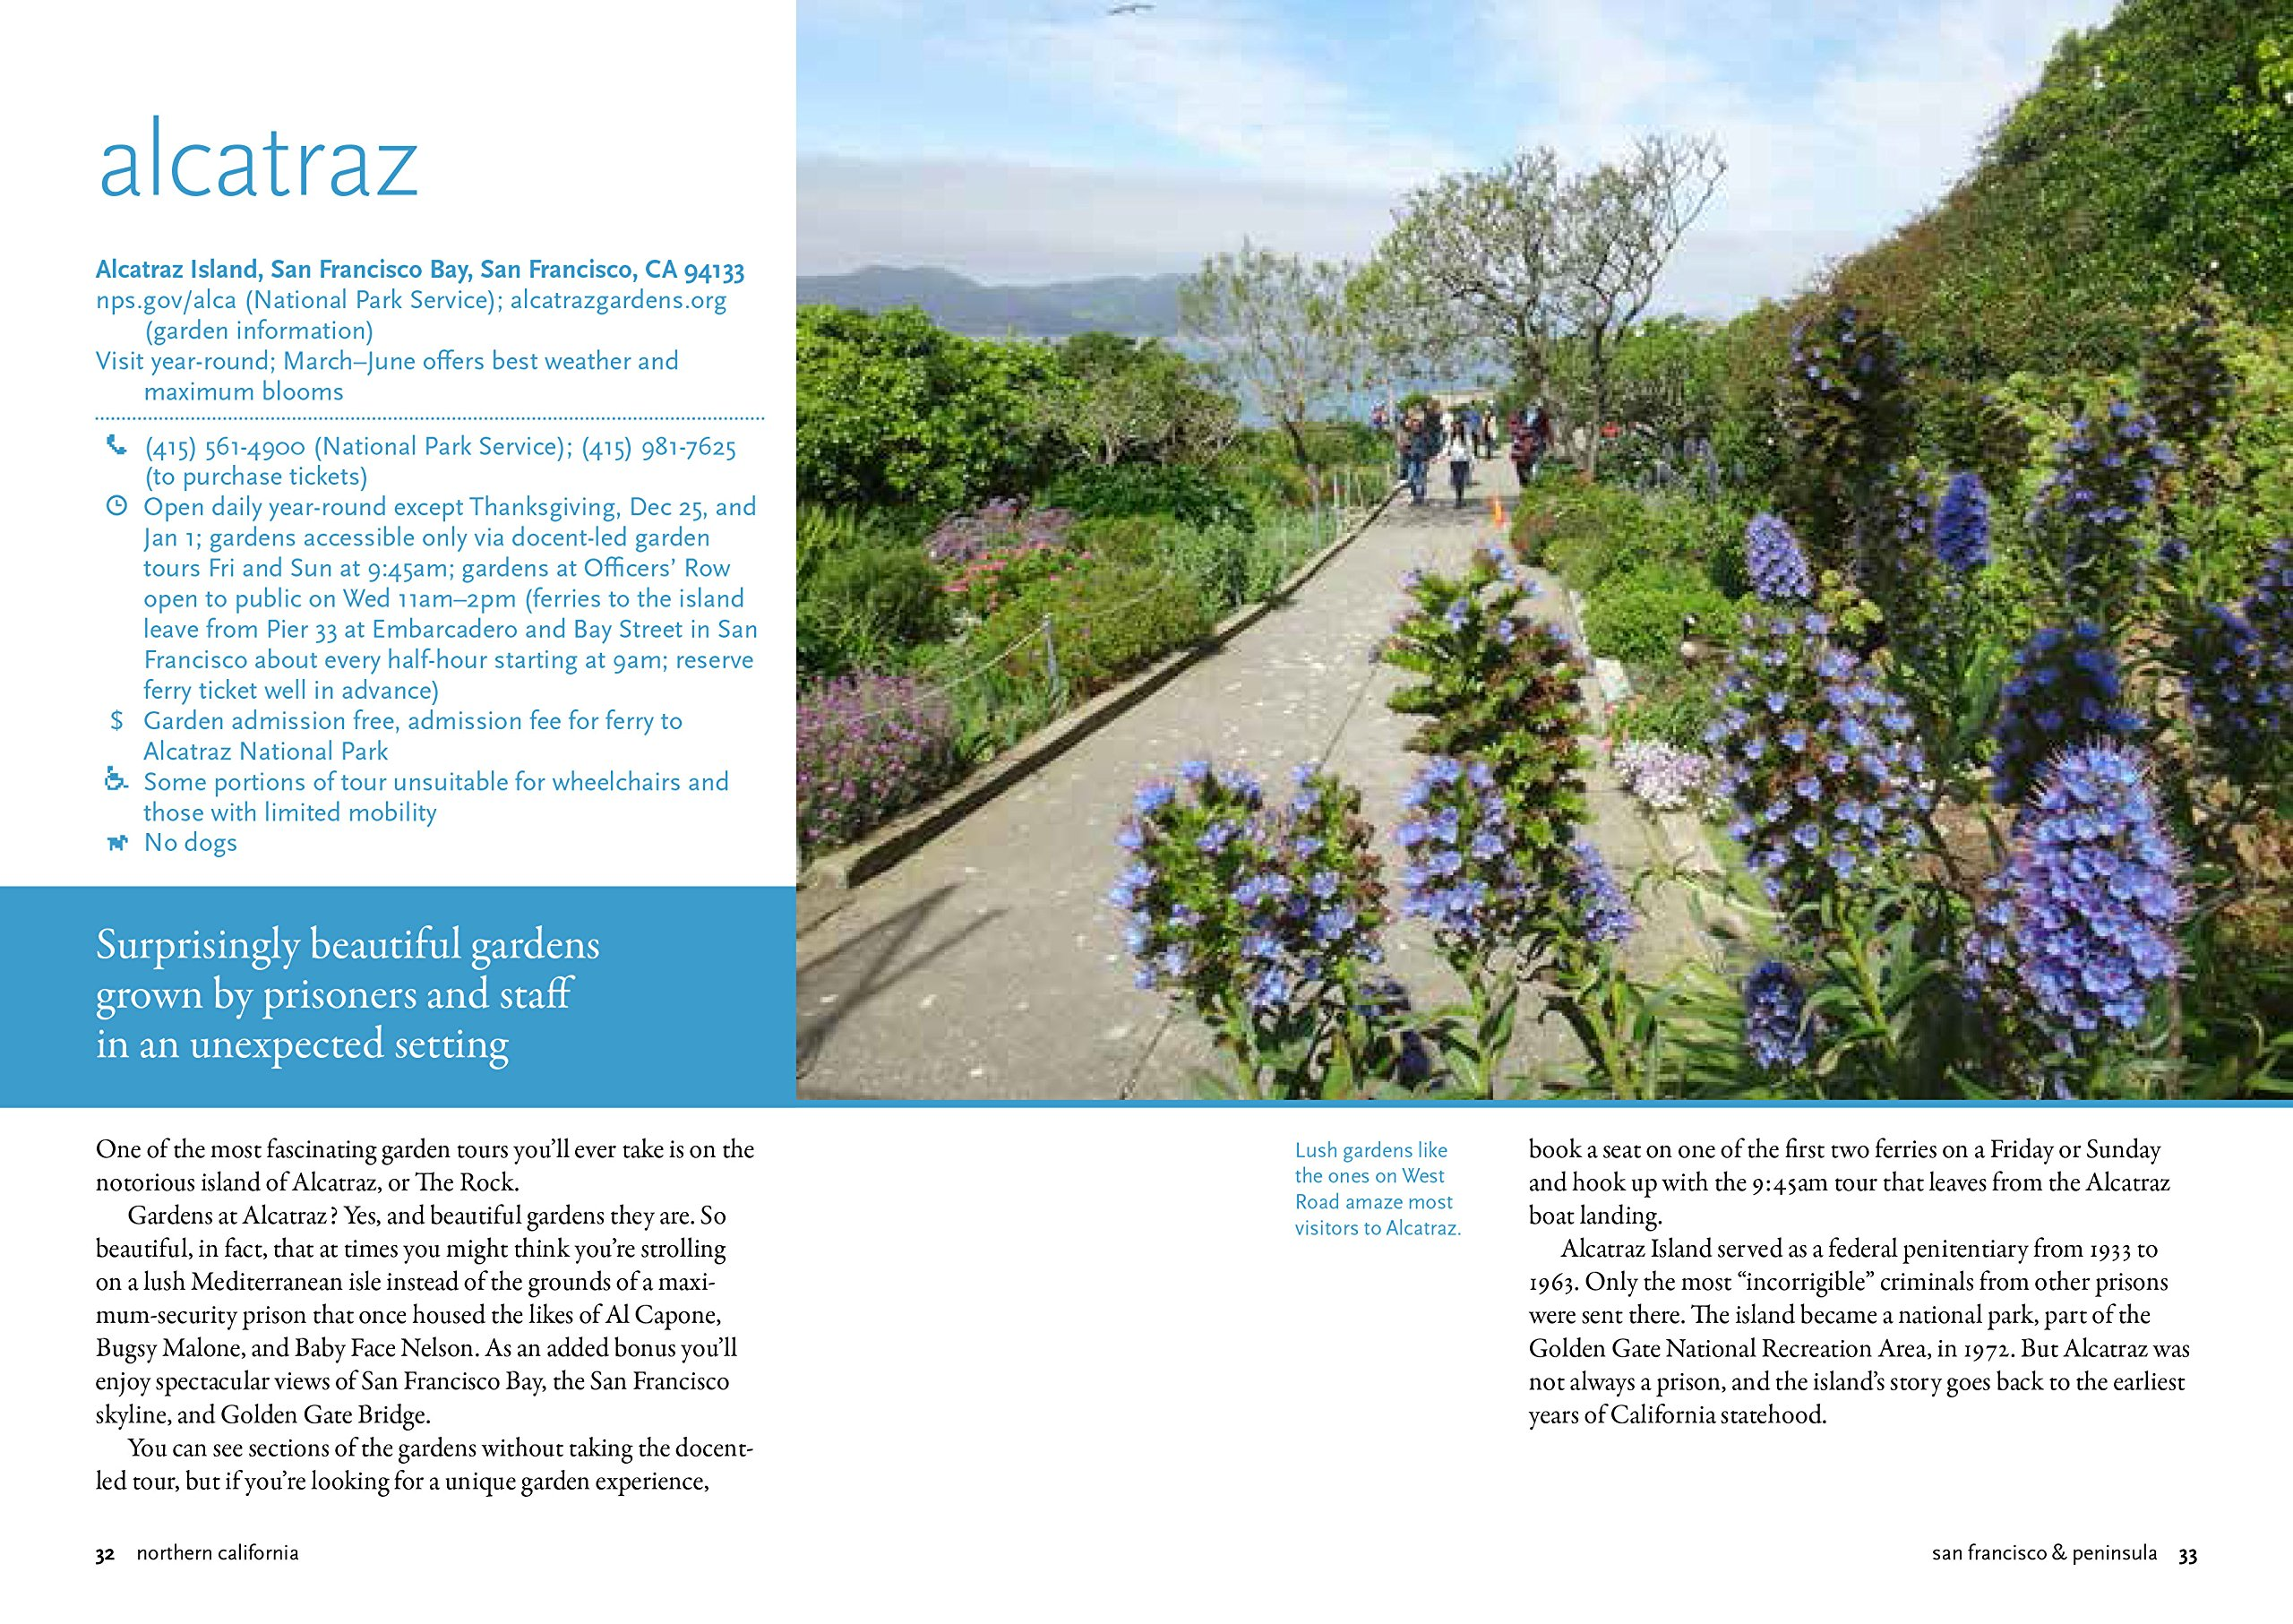 The california garden tour the 50 best gardens to visit in the the california garden tour the 50 best gardens to visit in the golden state donald olson 9781604697223 amazon books fandeluxe Image collections